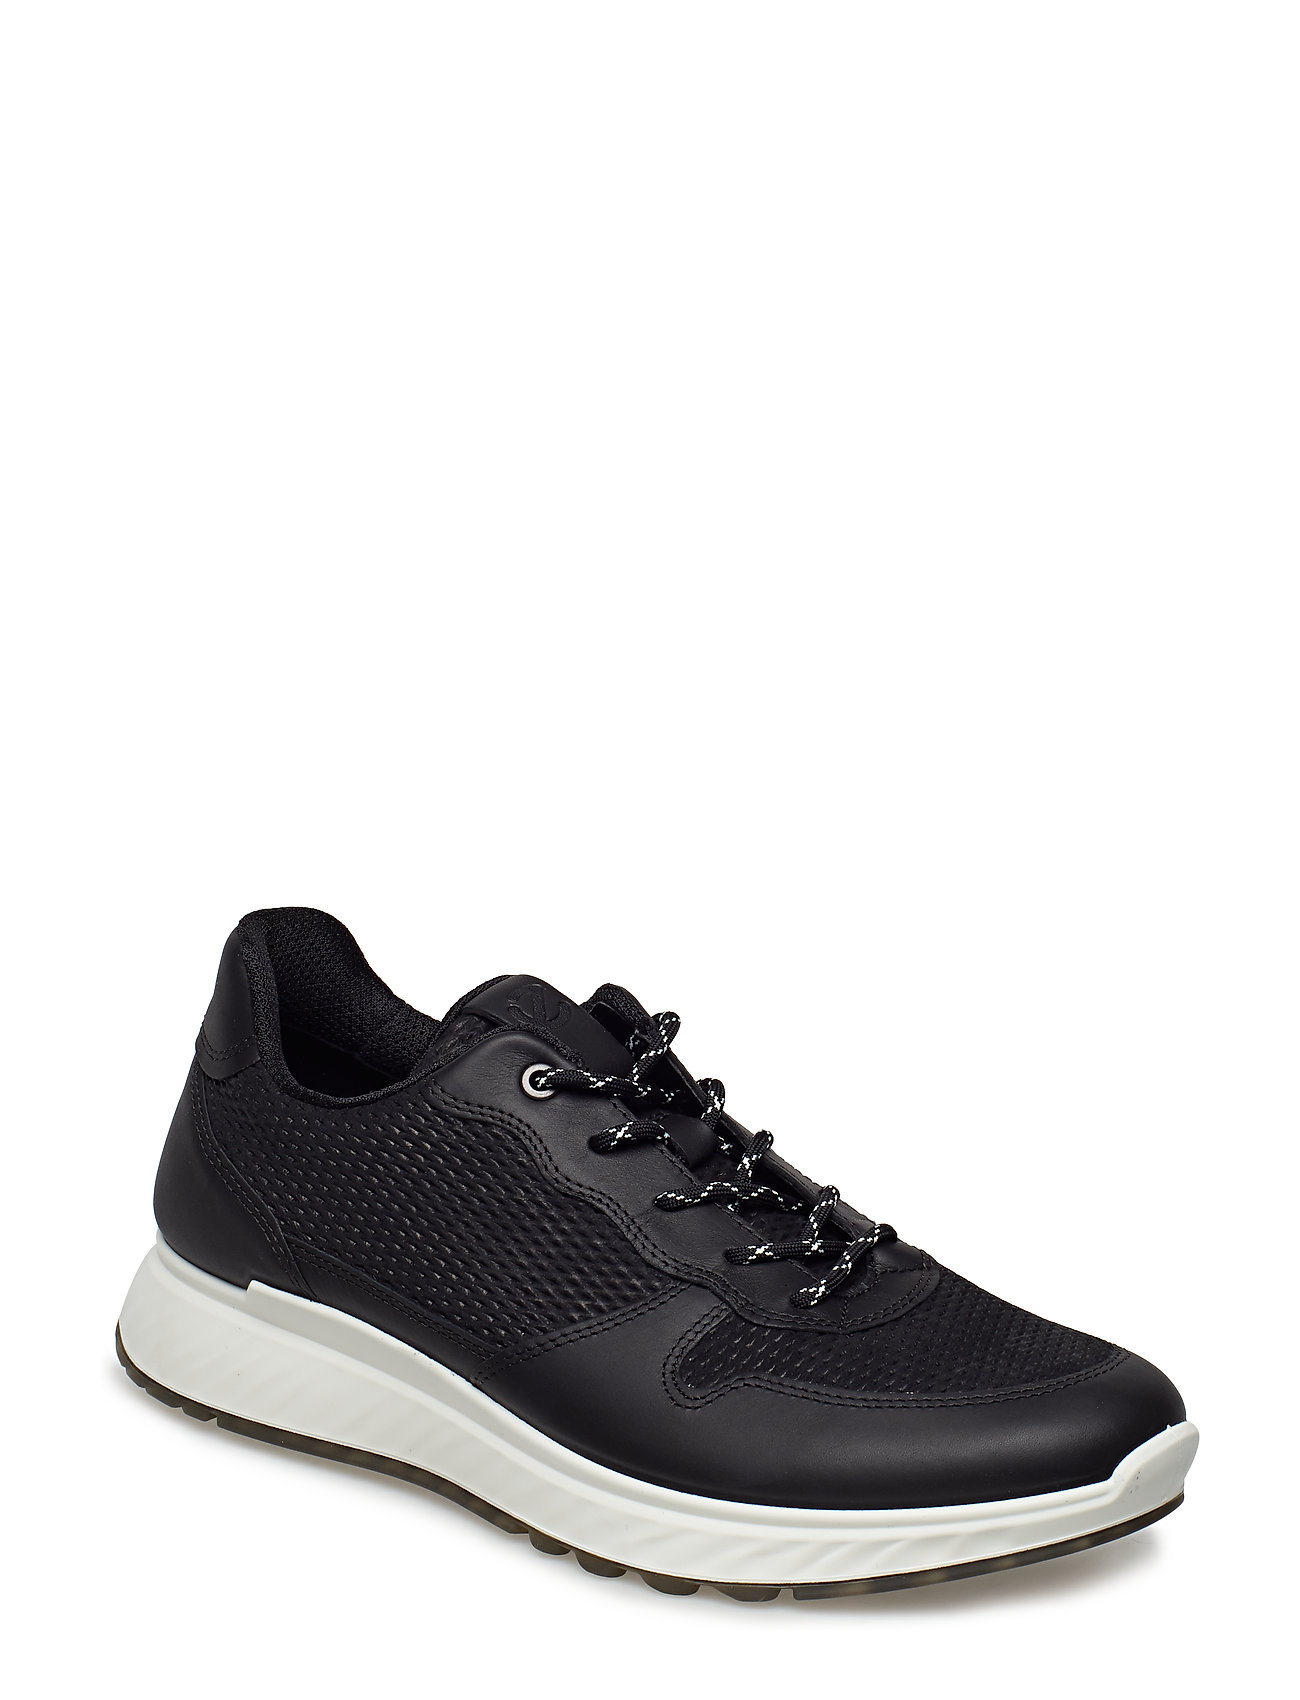 Image of St.1 M Low-top Sneakers Sort ECCO (3091982675)